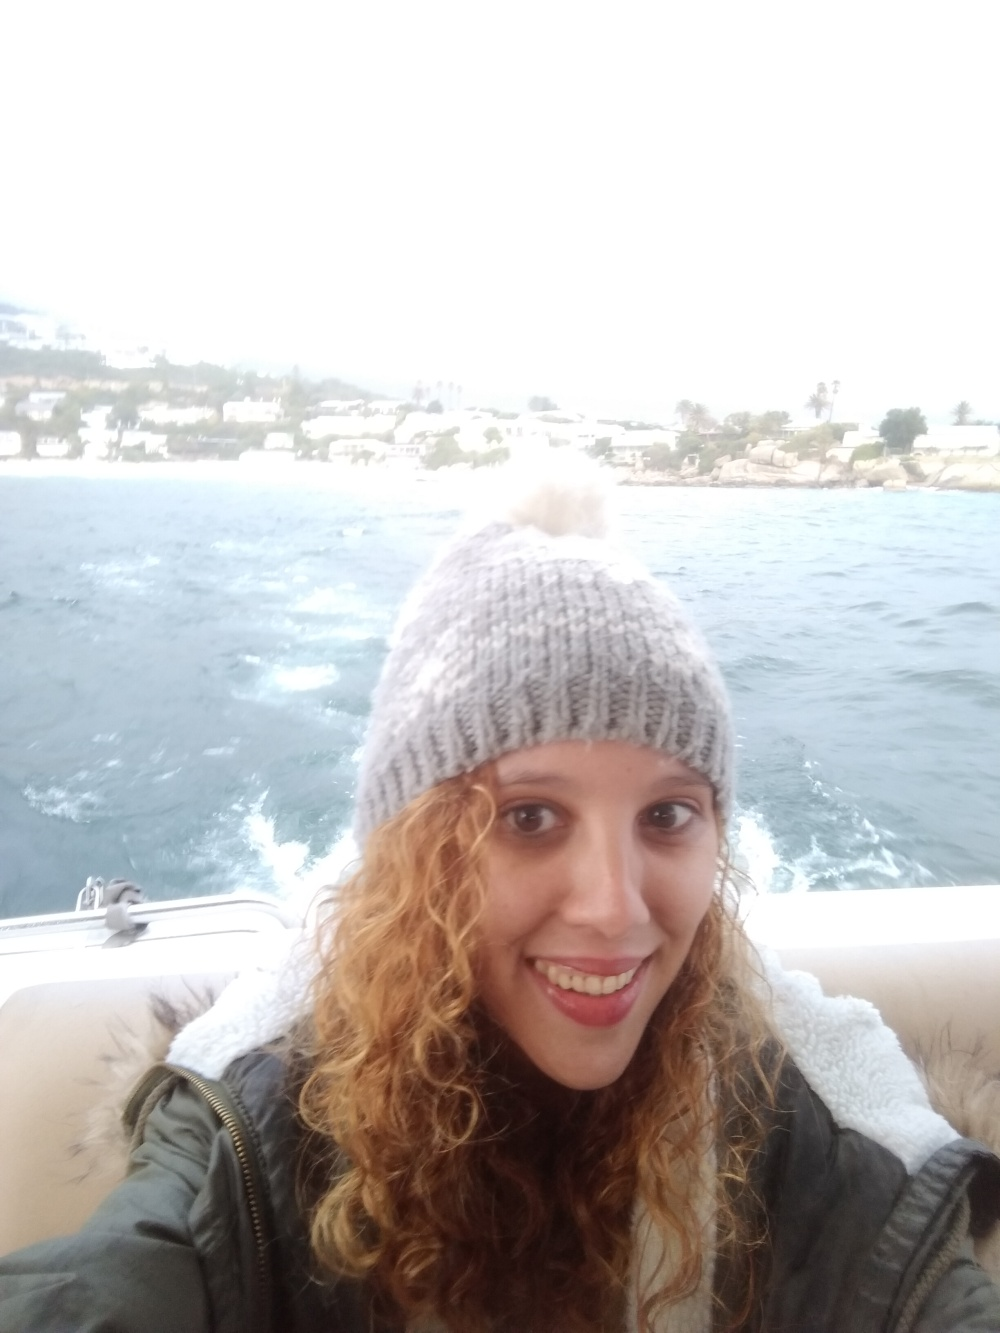 Something got caught in my tooth oh well. A boat trip selfie was needed.